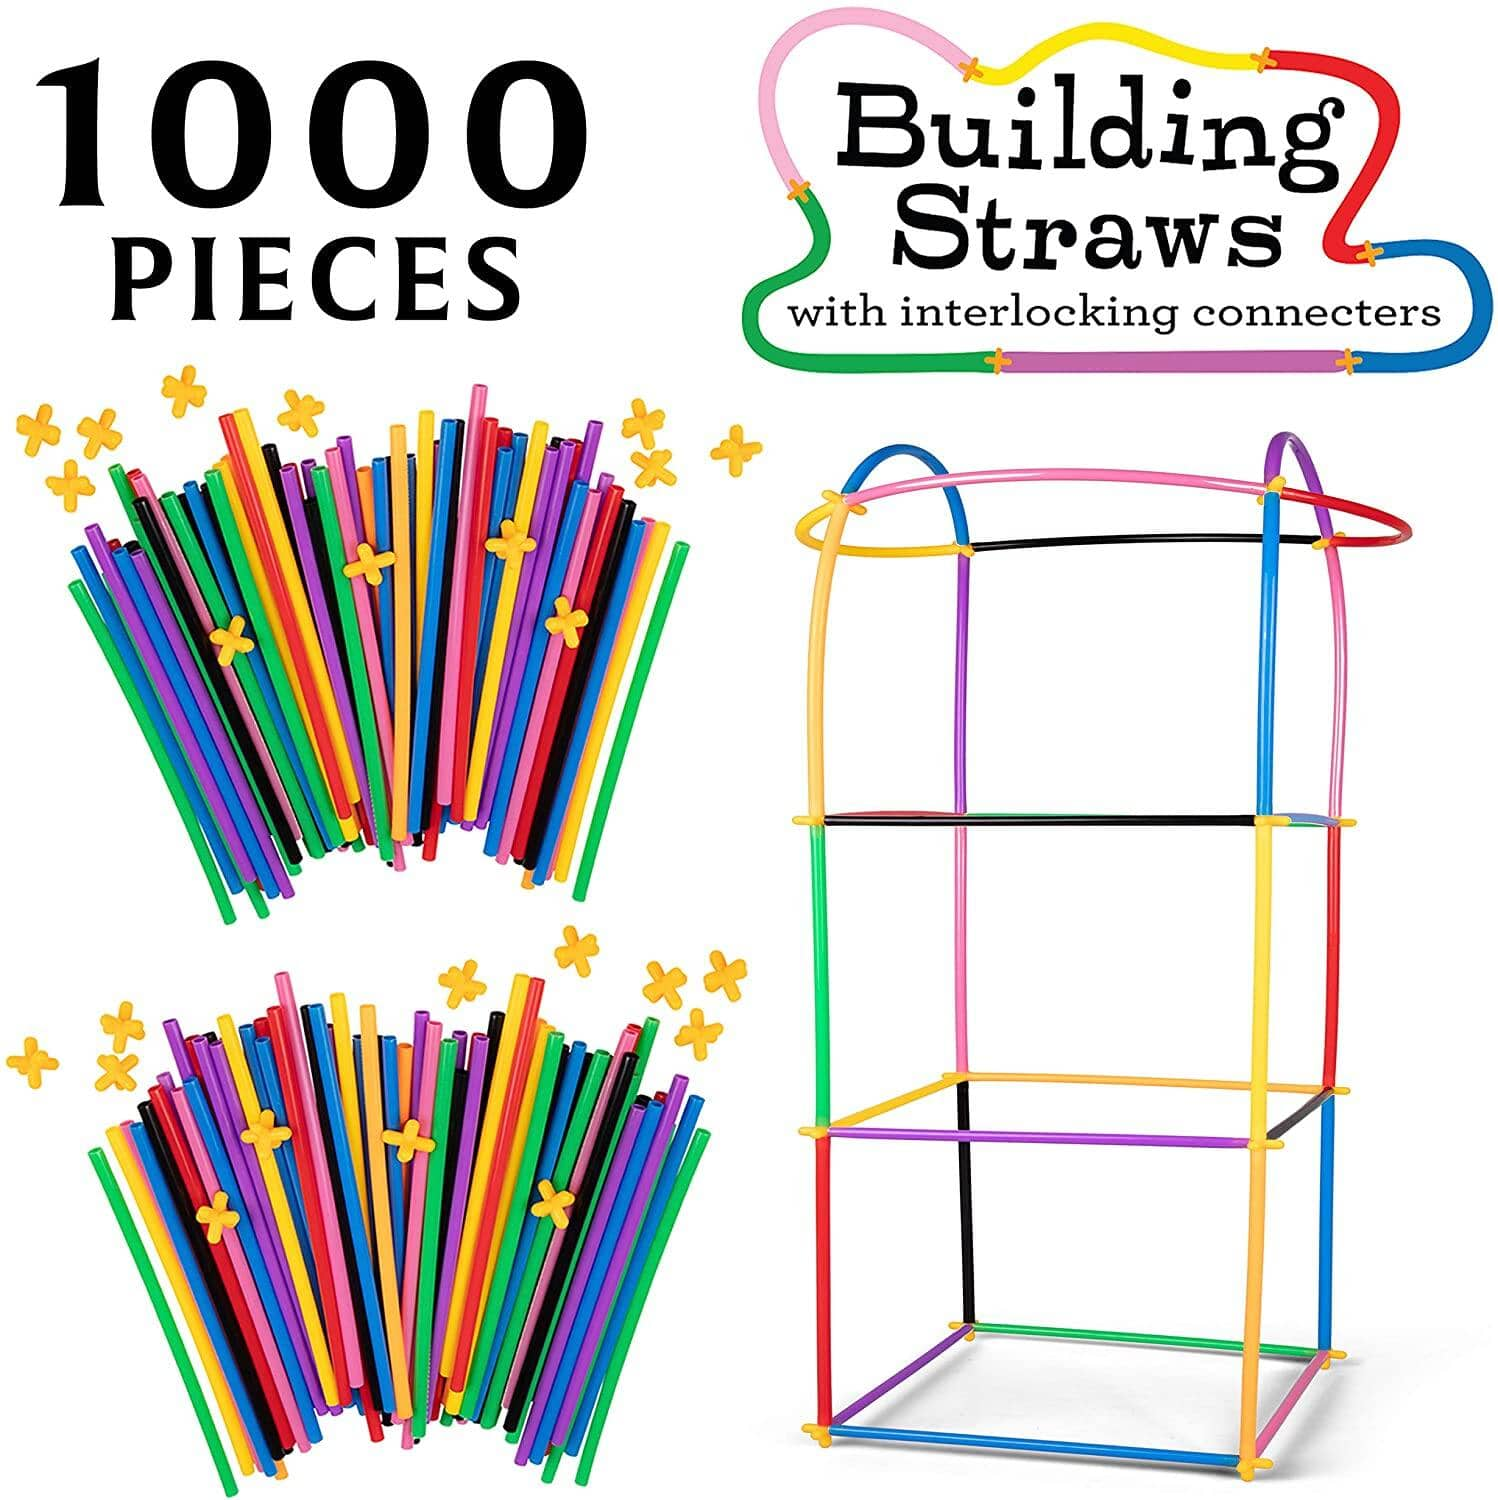 1000 pc Building Straws and Connectors Set $15 + Free Shipping